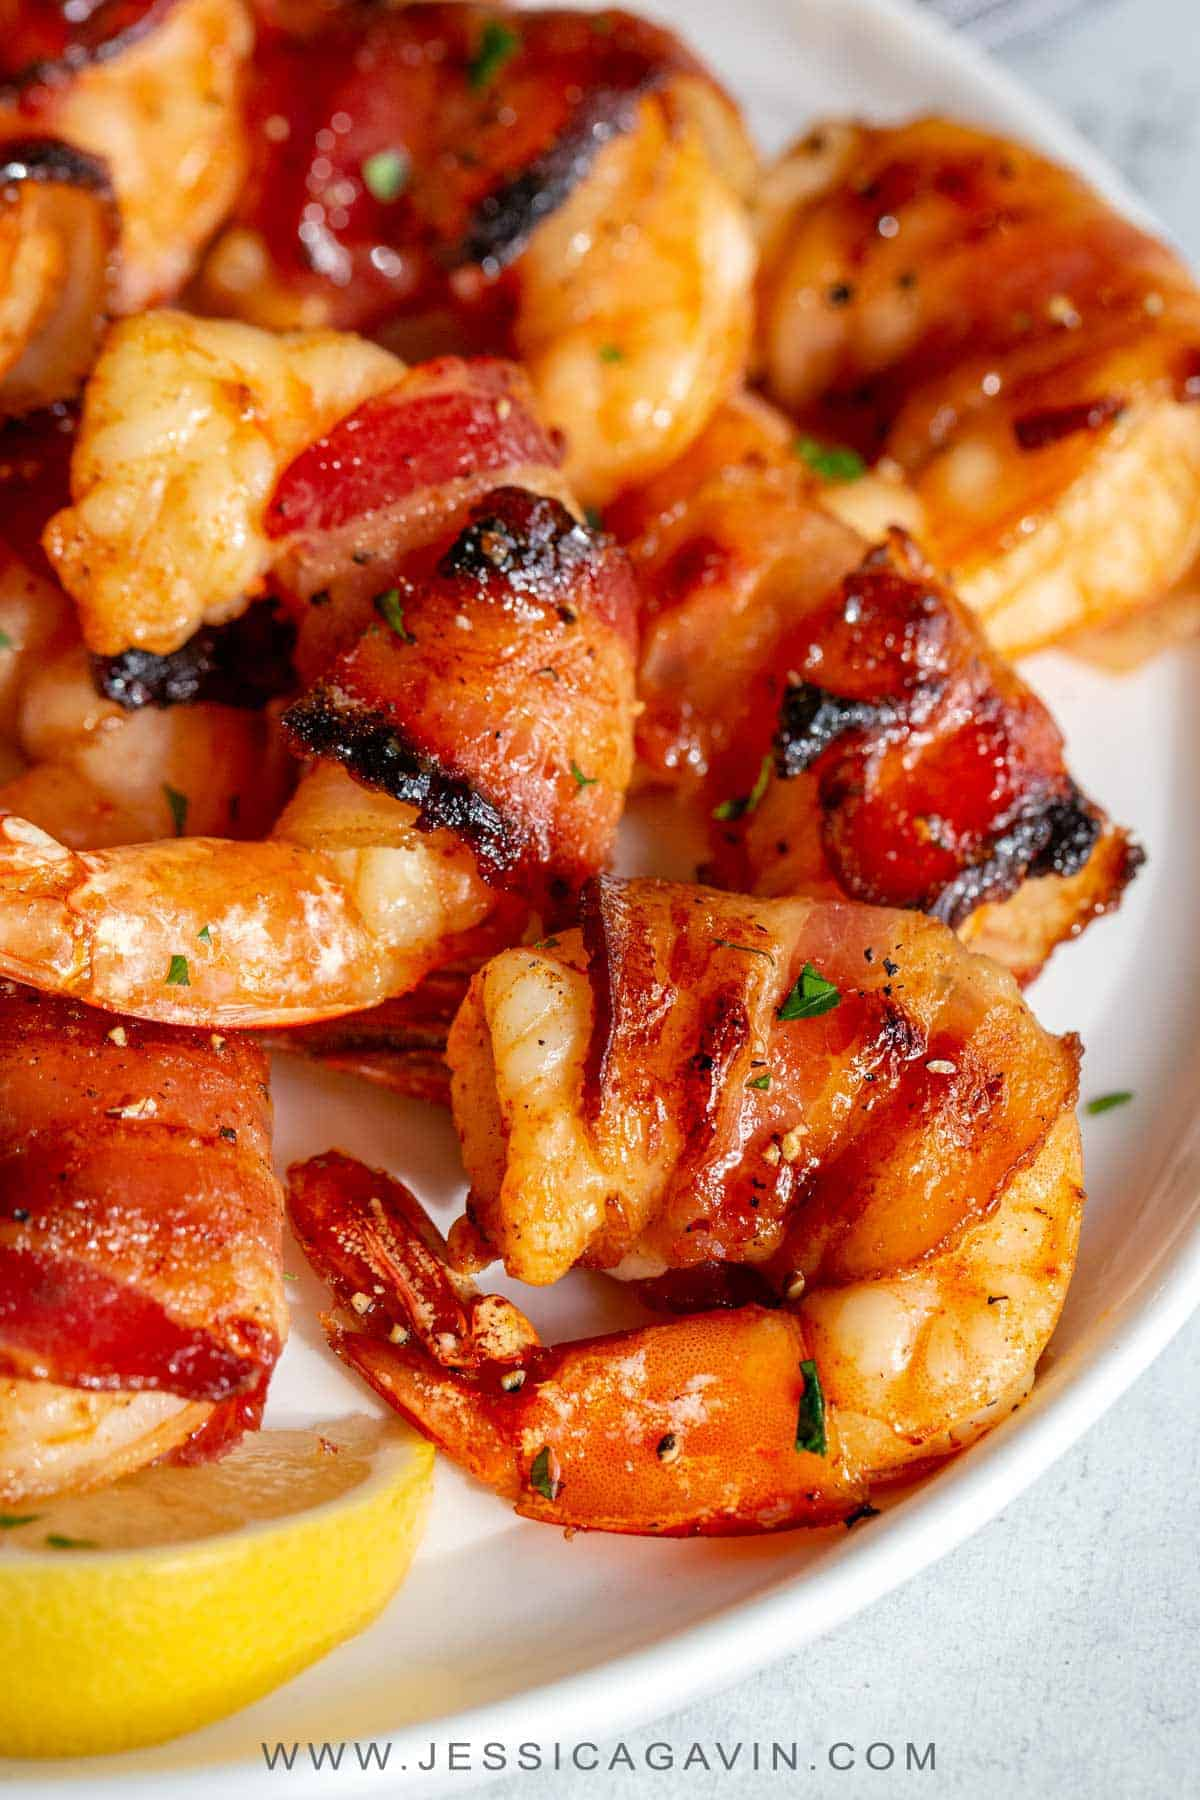 Bacon wrapped shrimp appetizer that\'s guaranteed to impress. Bacon is by par-cooked first before wrapping around marinated shrimp with a maple glaze. #baconshrimp #bacon #appetizer